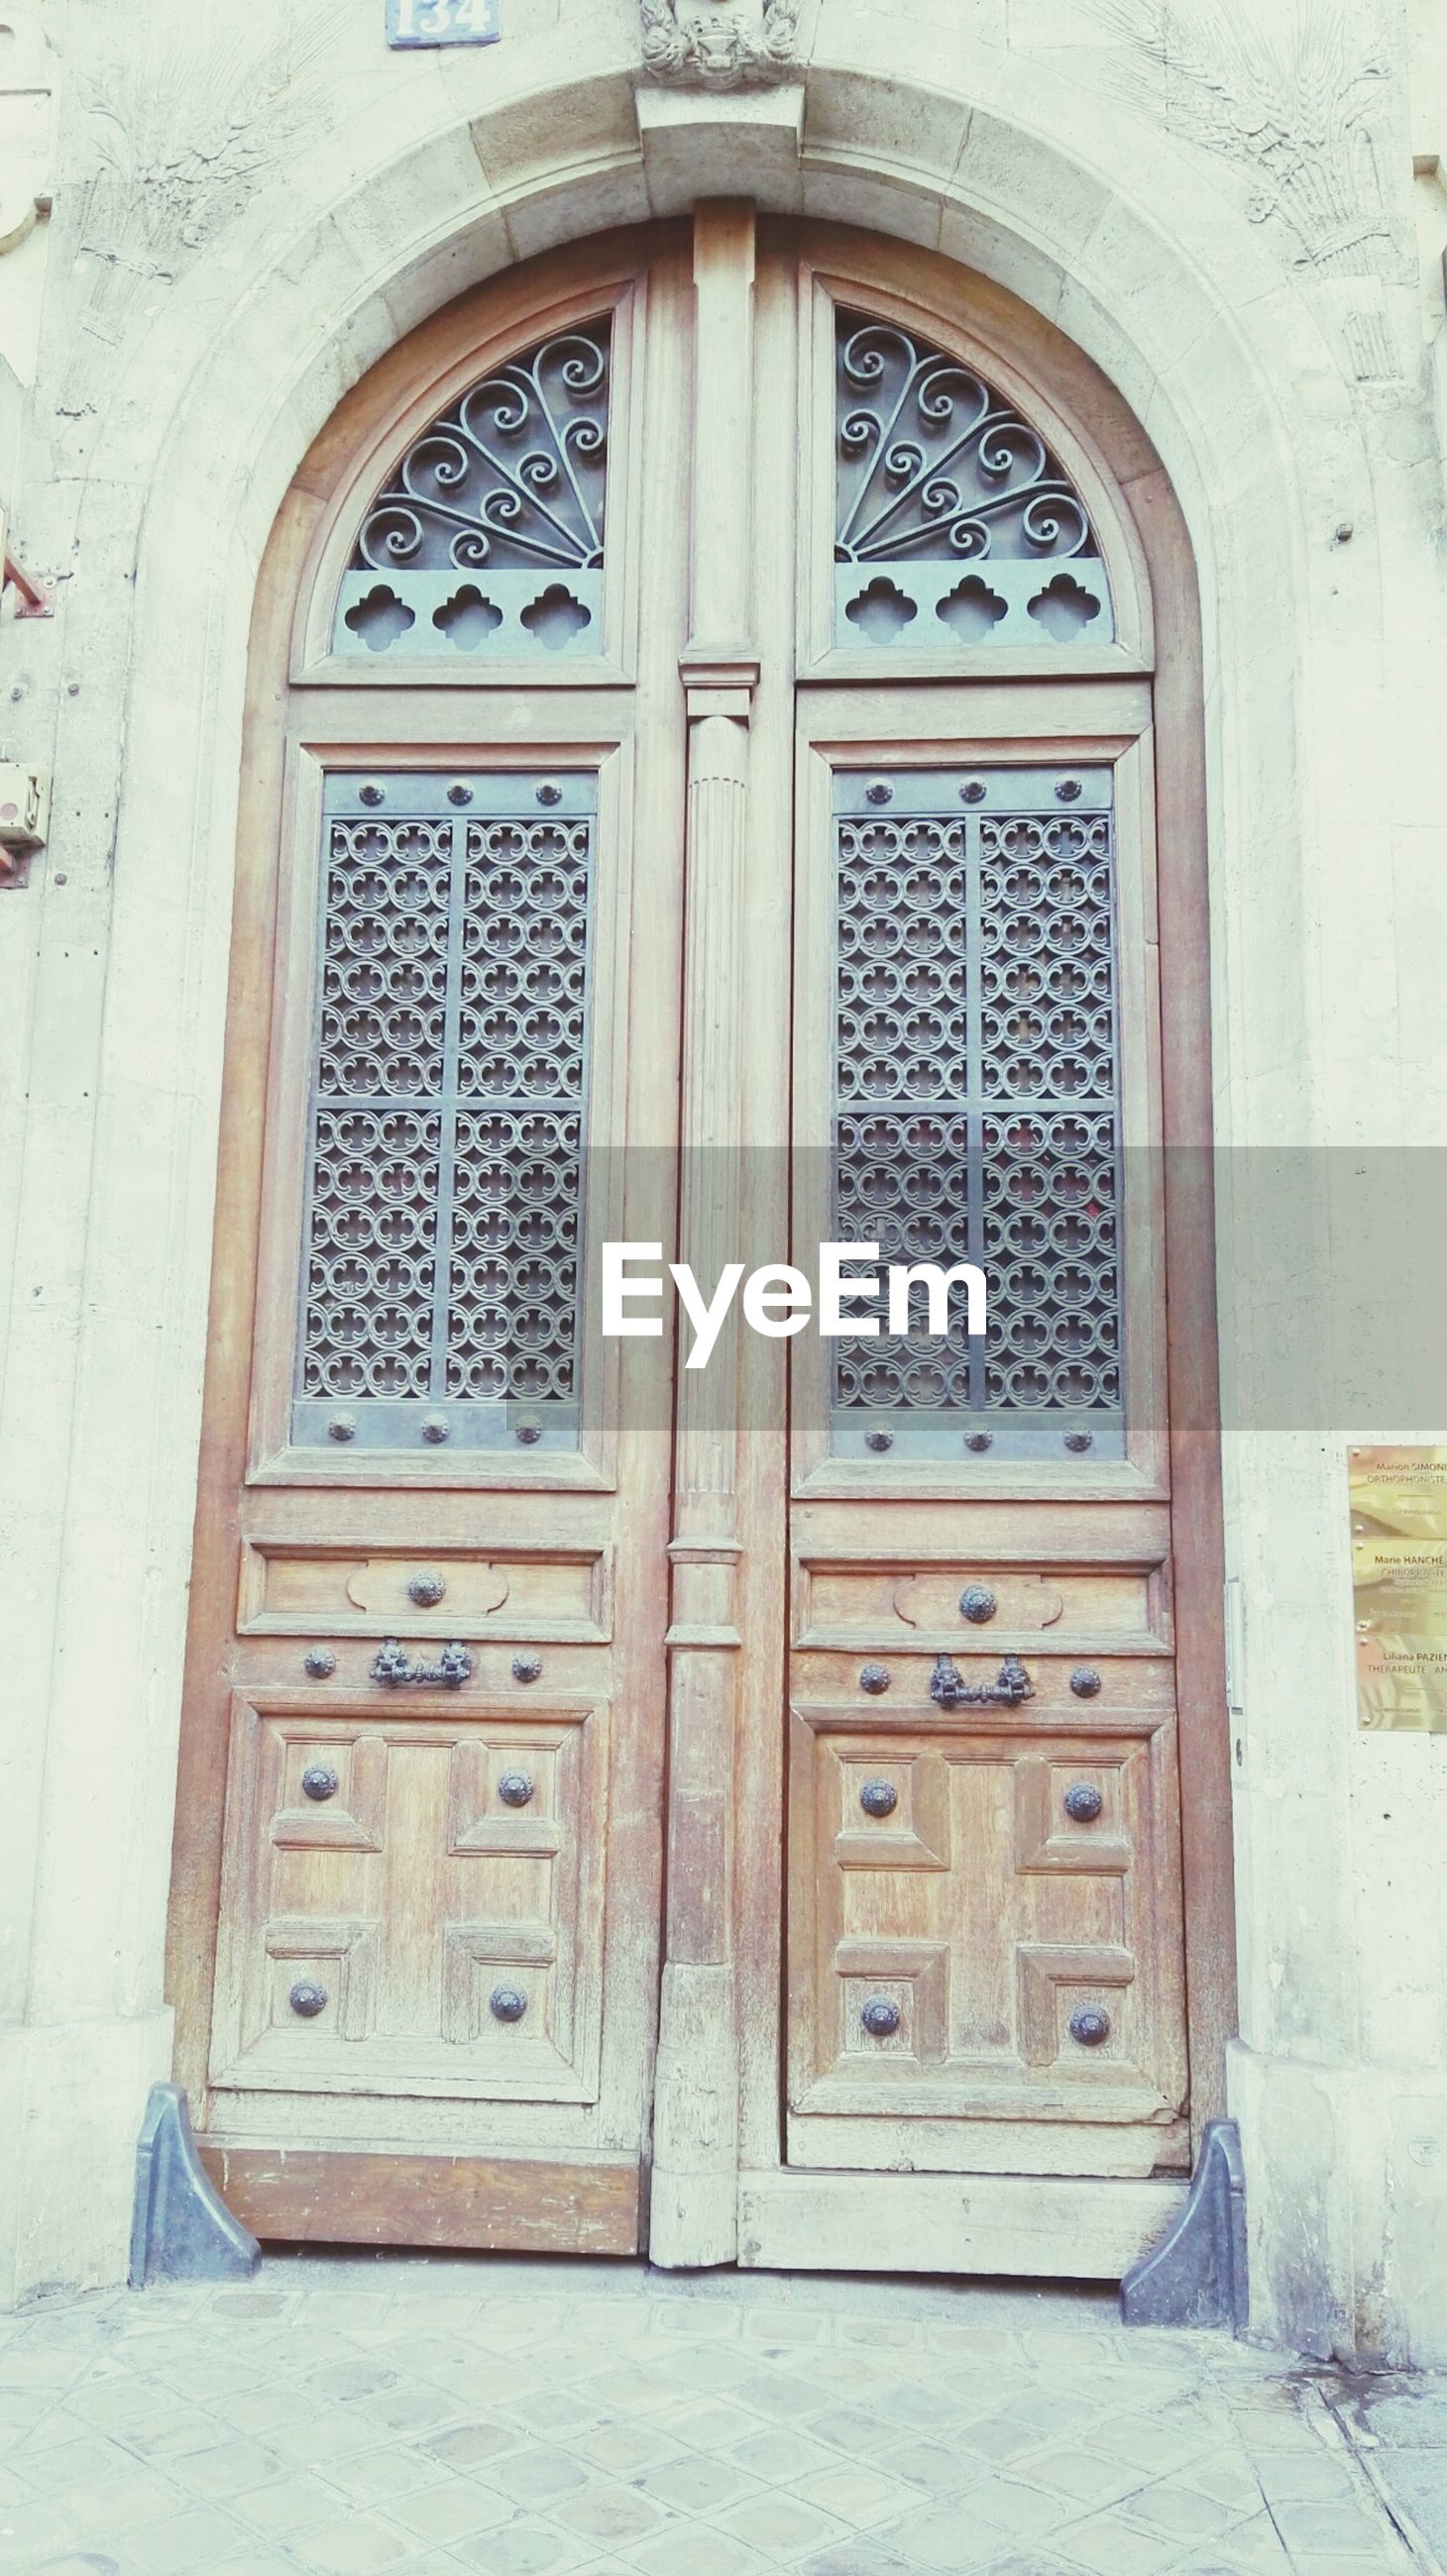 door, closed, architecture, built structure, entrance, building exterior, window, arch, safety, house, protection, wood - material, doorway, old, closed door, security, day, front door, facade, ornate